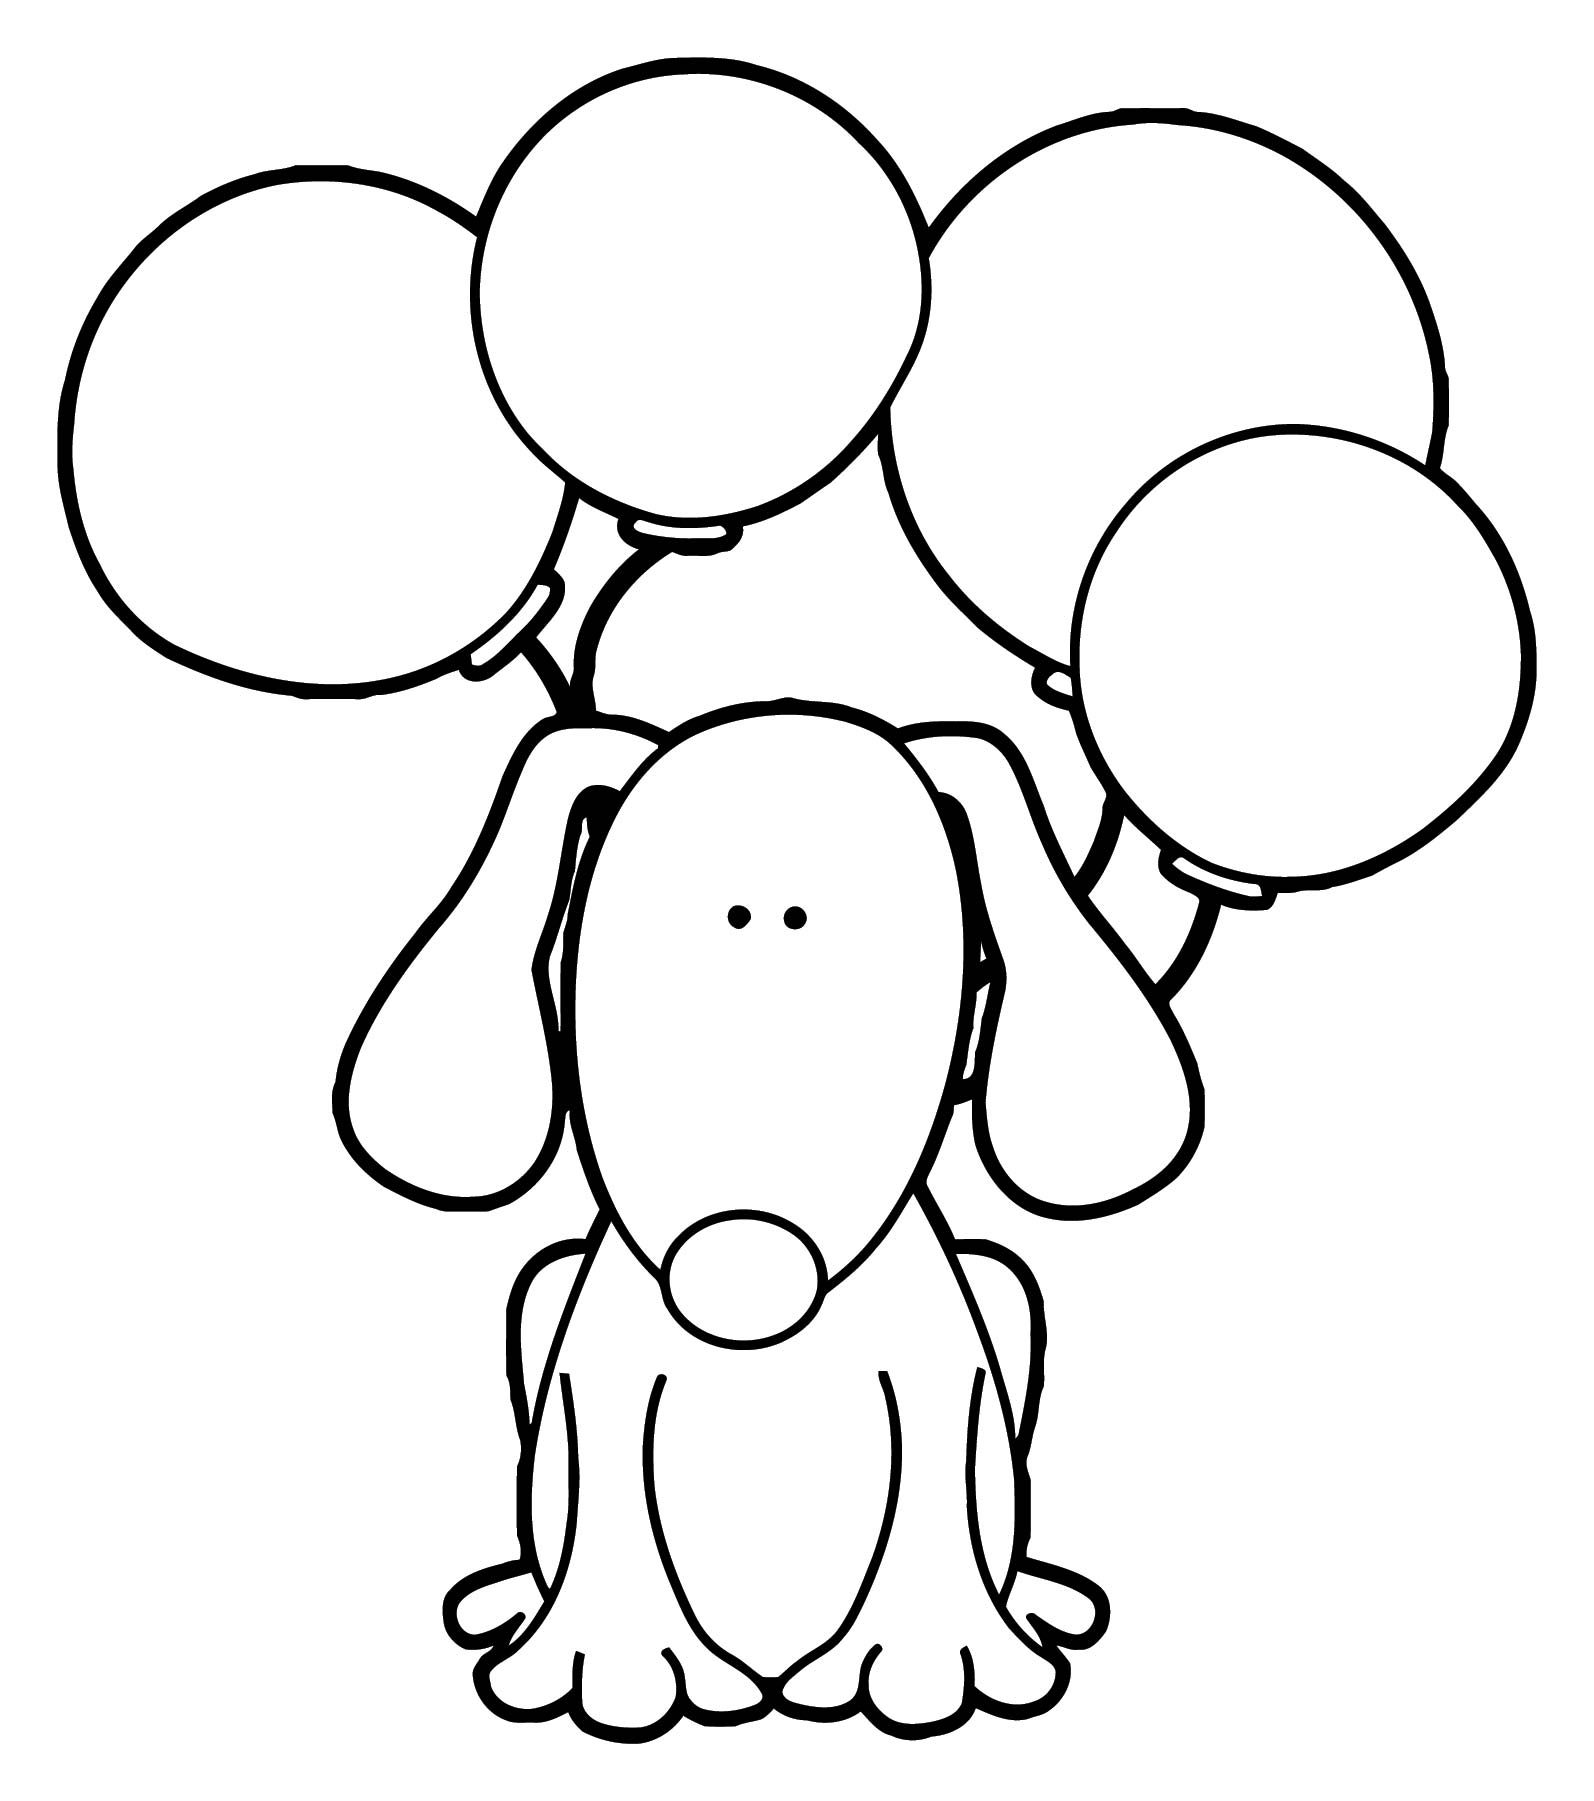 Dog Coloring Pages 141 | Wecoloringpage.com